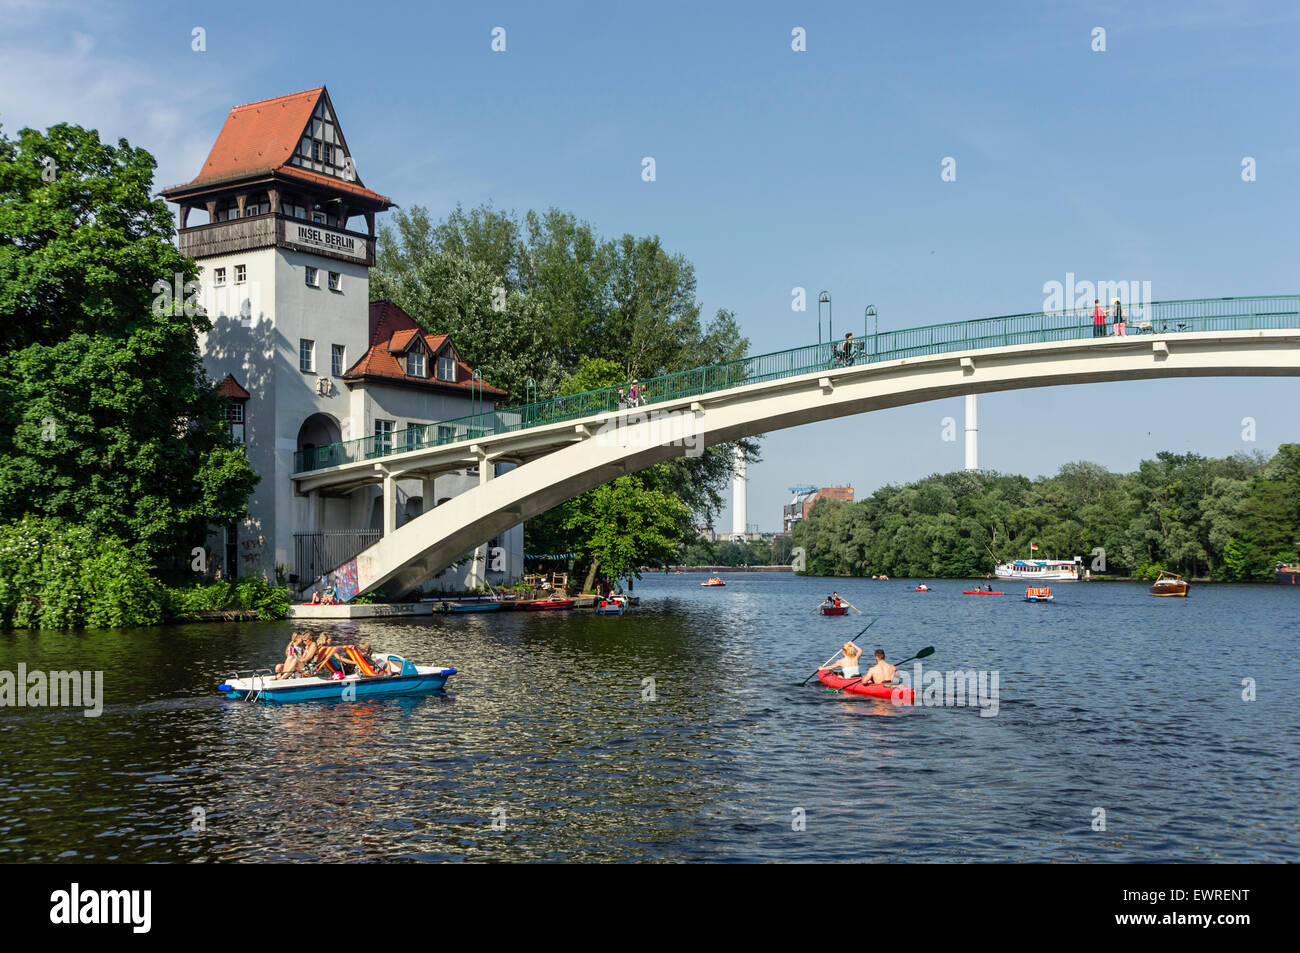 Island of Jouth, Insel der Jugend , River Spree, Paddle boats in summer, Treptow, Berlin - Stock Image